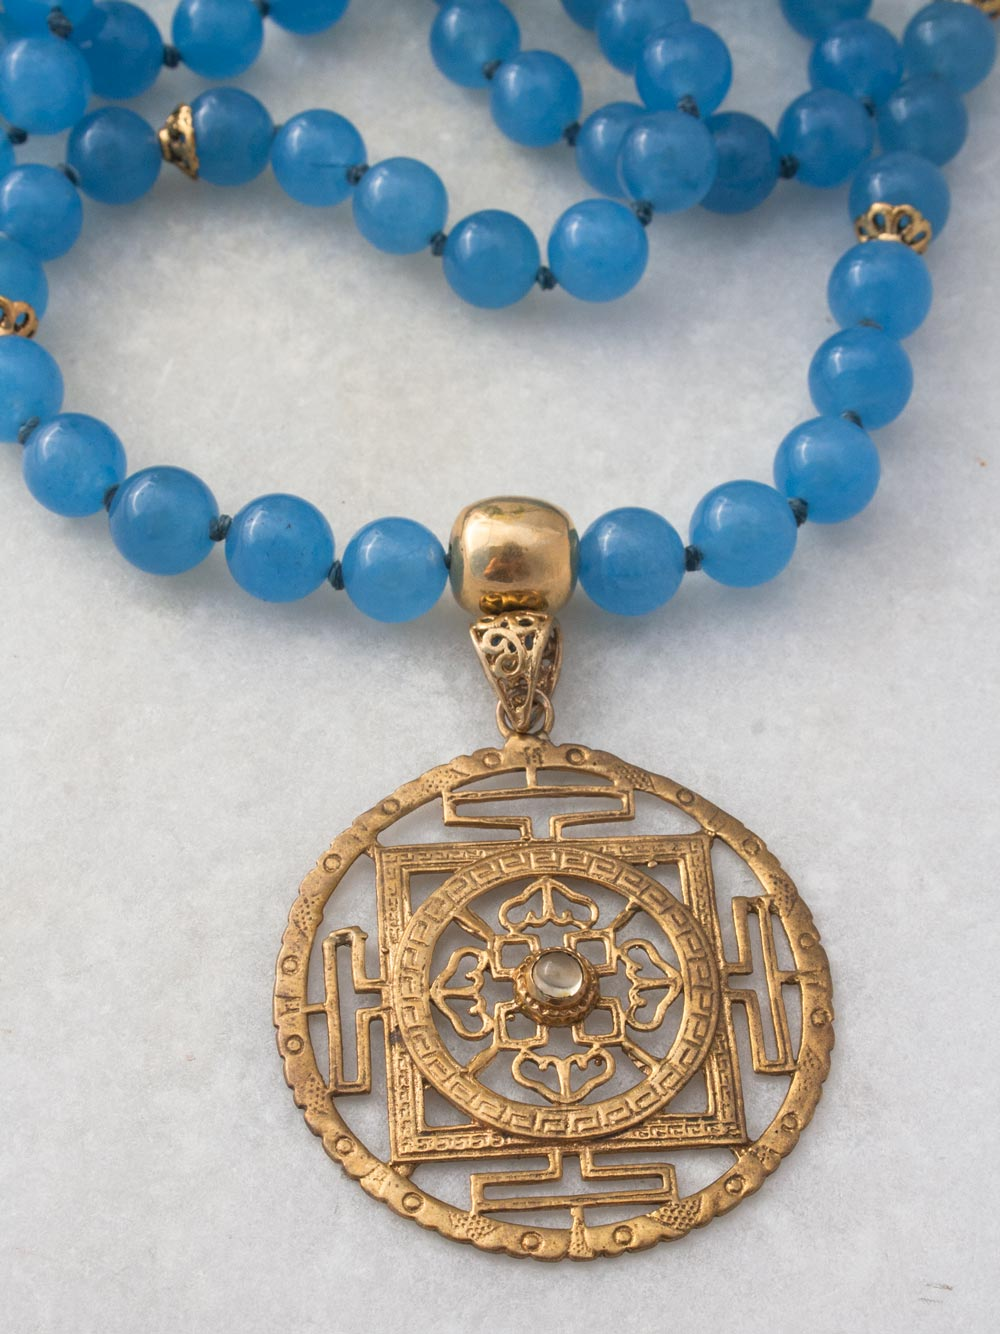 Beyond Infinity Mala, in 10mm Avalon blue aventurine, with brass Guru and Mandala. Guru and Mandala alternate view.